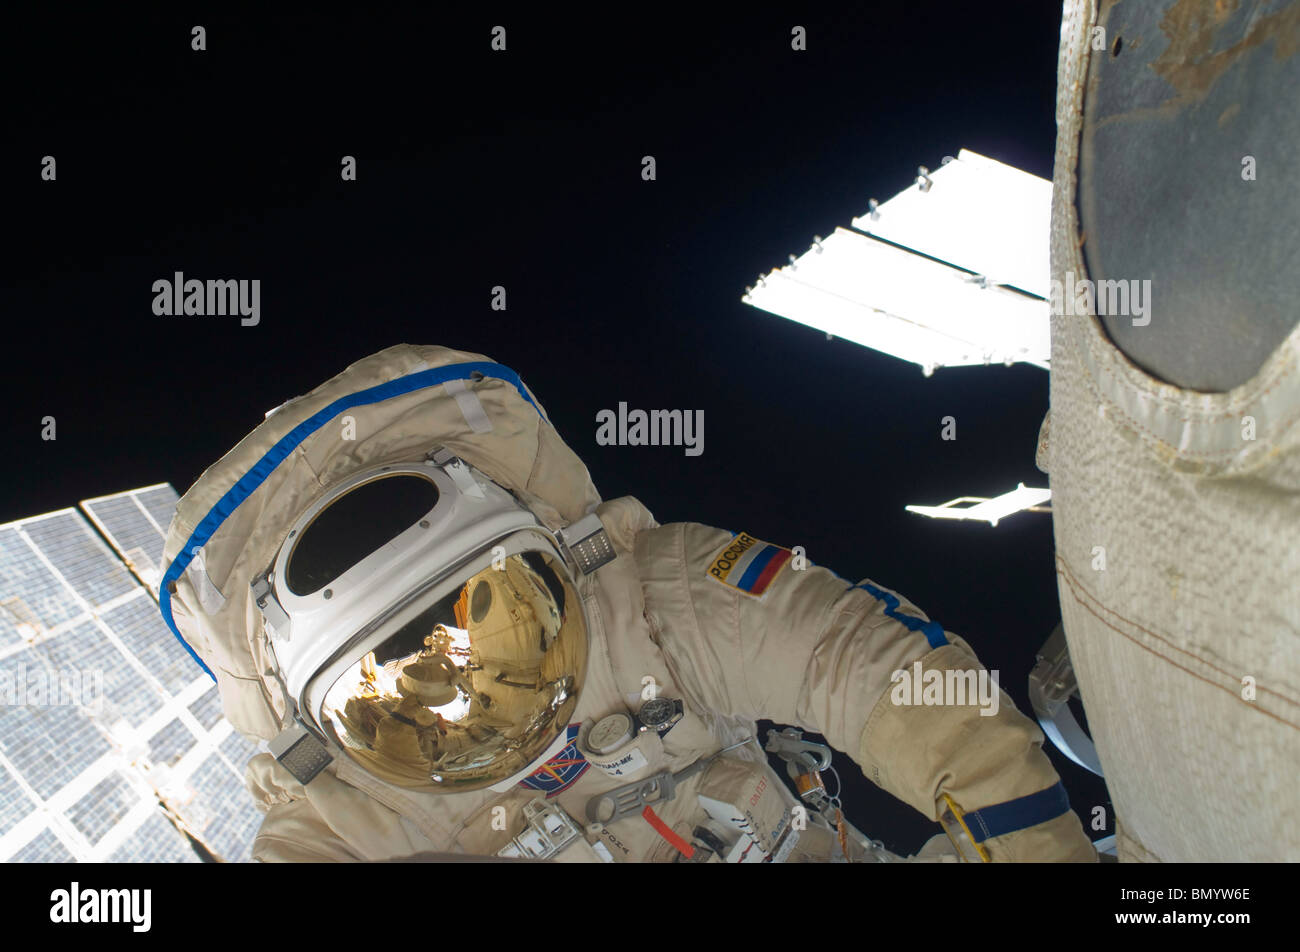 Russian cosmonaut performs a spacewalk. - Stock Image